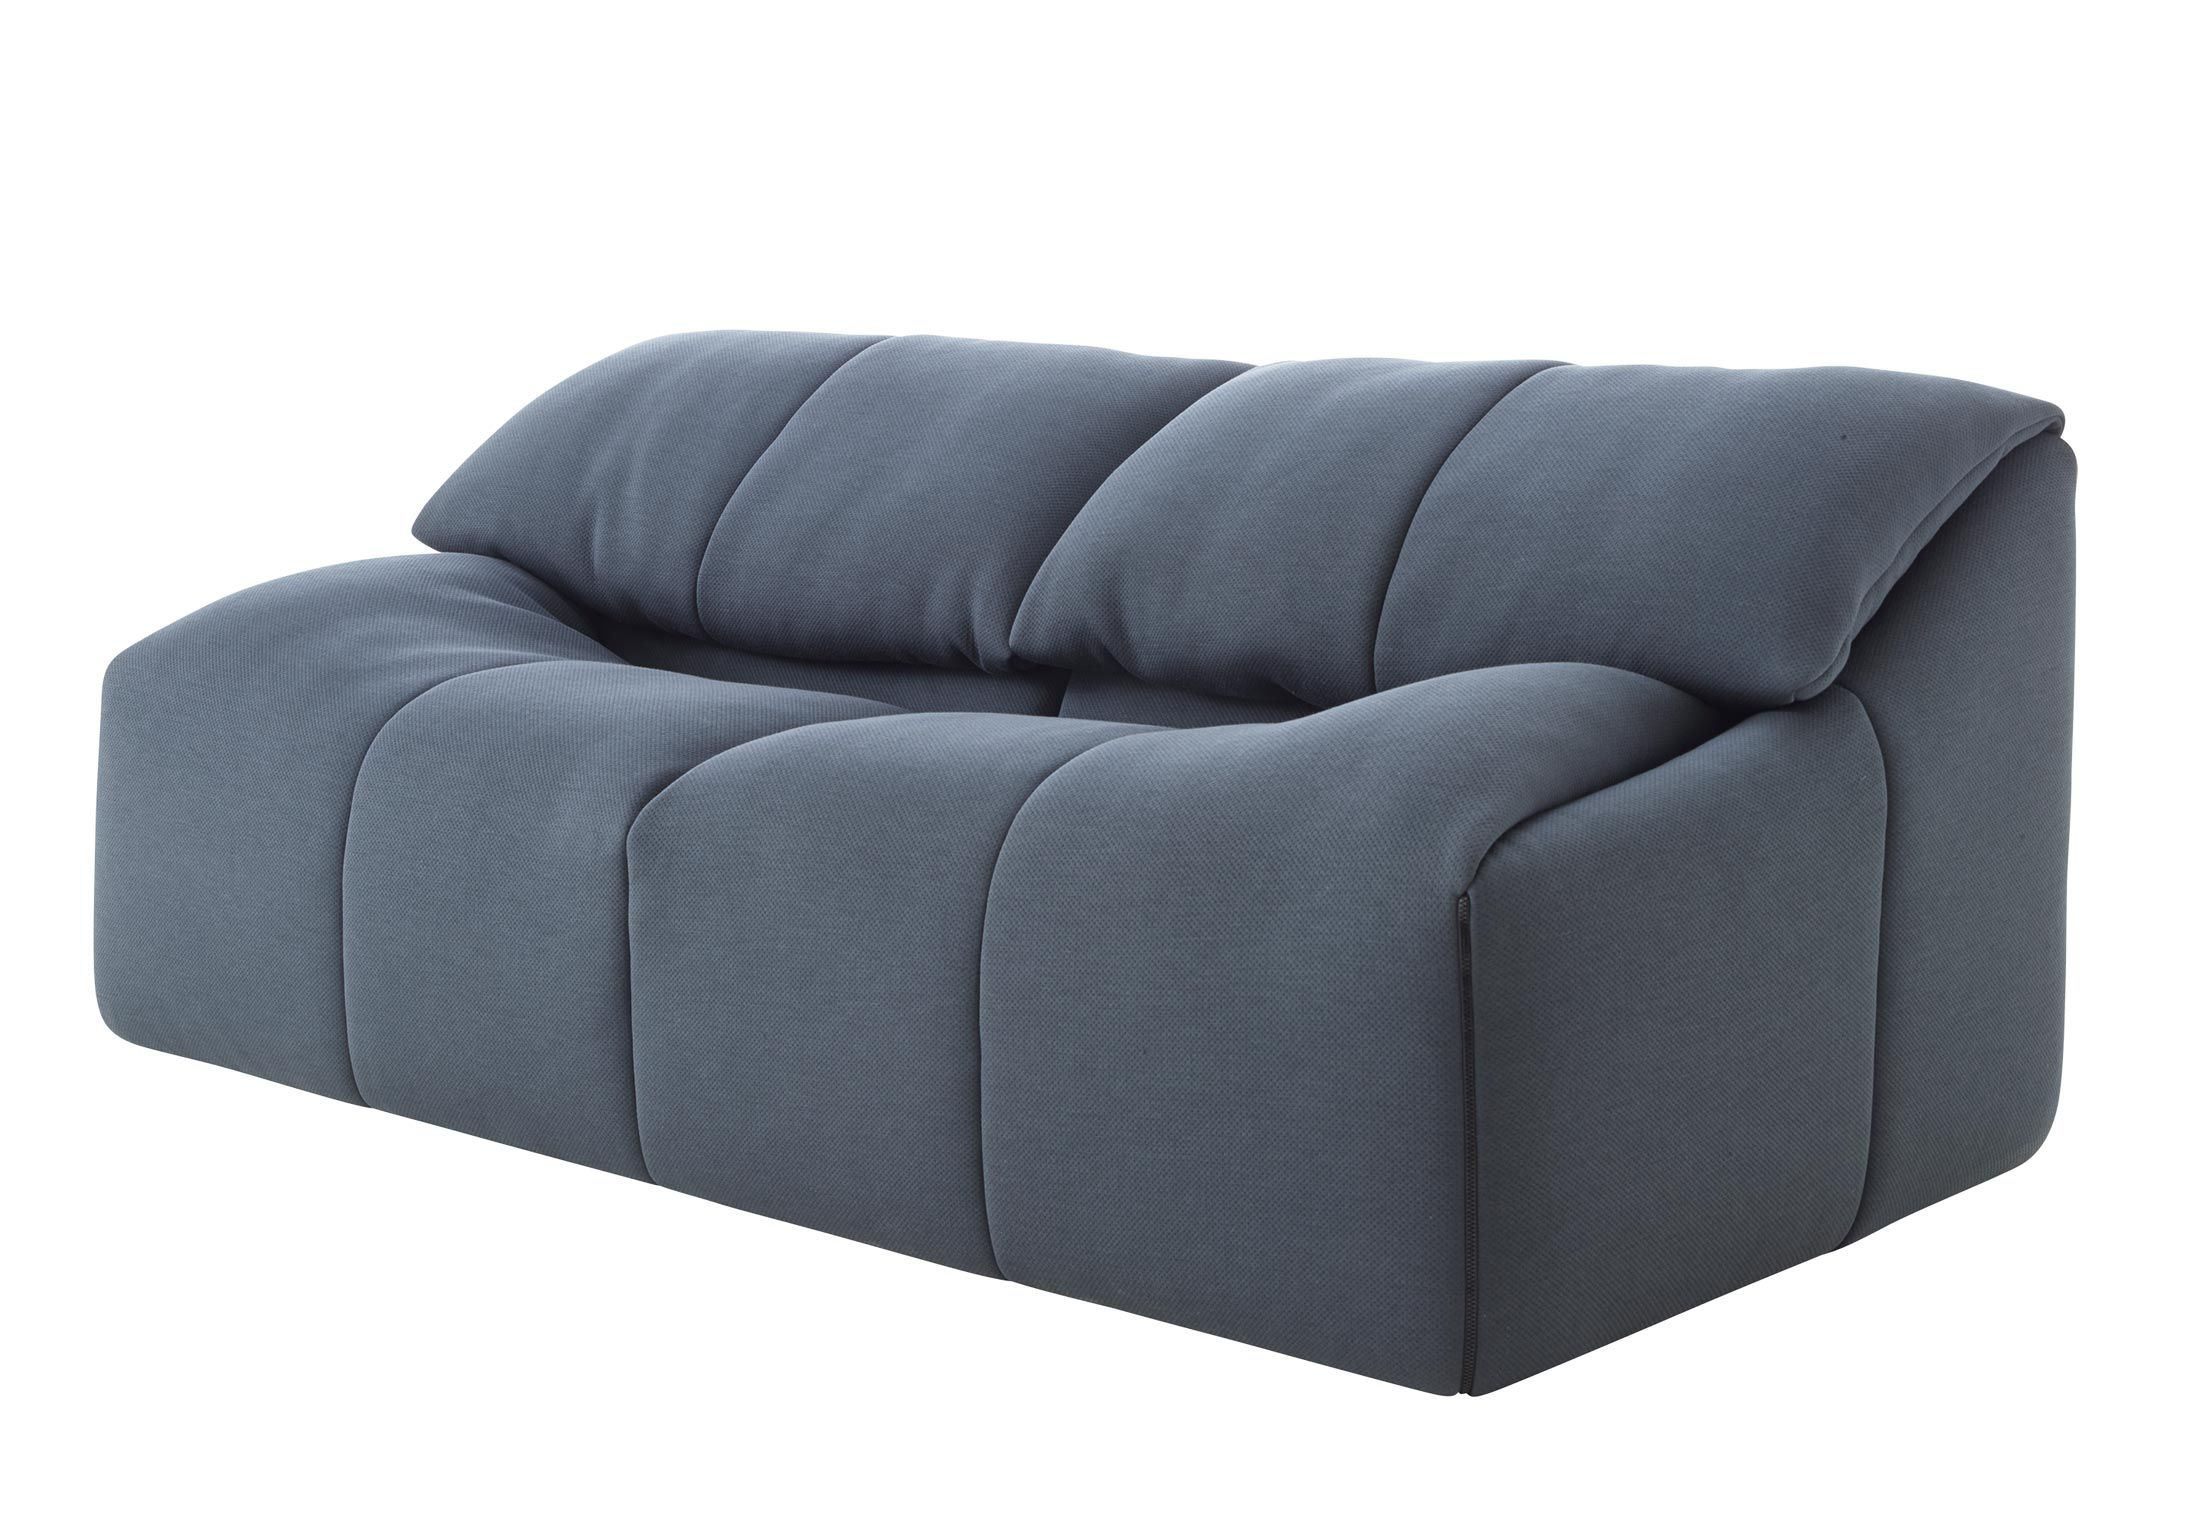 Plumy 2 Seater Sofa By Annie Hieronymus For Ligne Roset